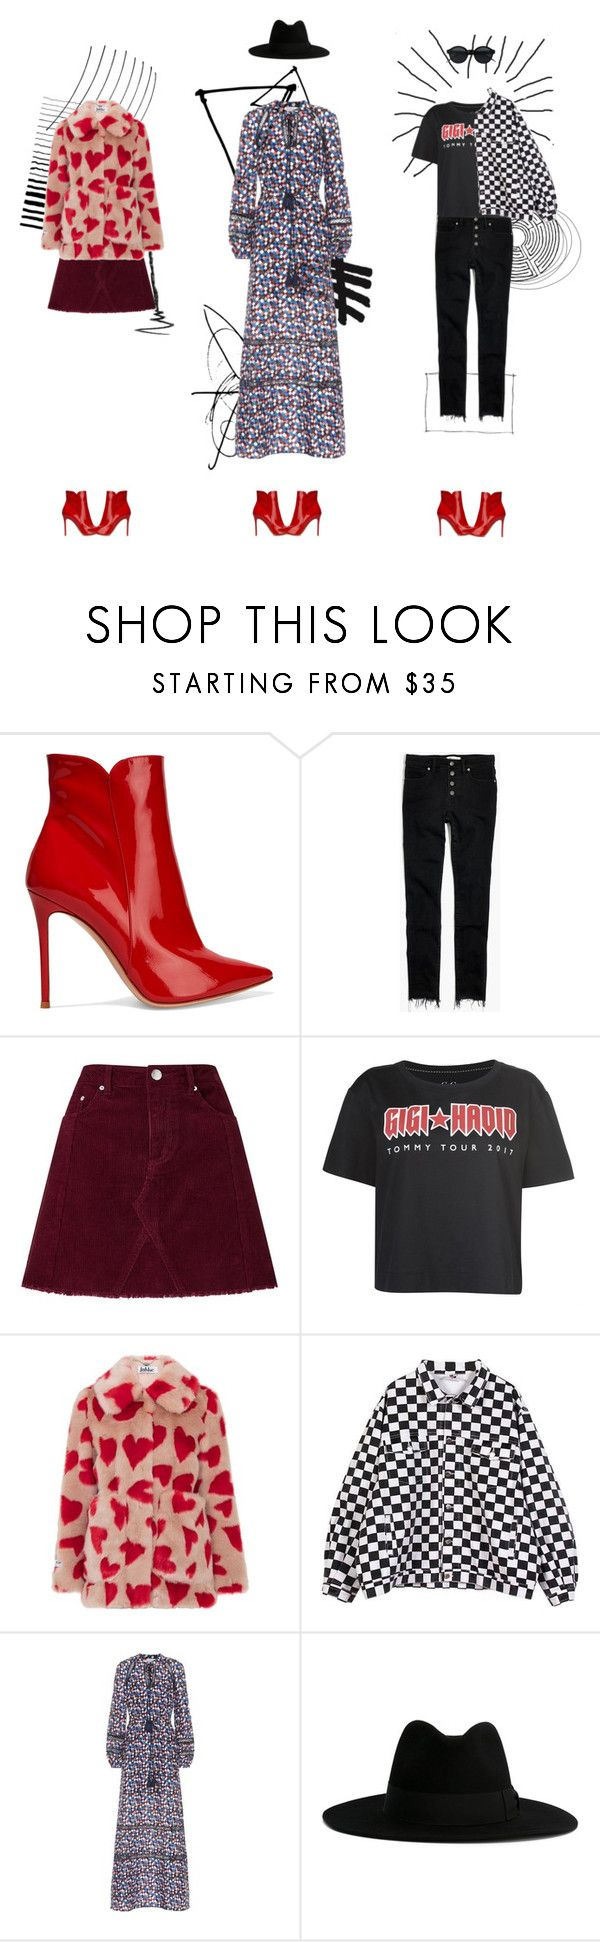 """how to style: red ankle boots"" by ditsi ❤ liked on Polyvore featuring Gianvito Rossi, Madewell, Miss Selfridge, Tommy Hilfiger, Jakke, Tory Burch and Yves Saint Laurent"